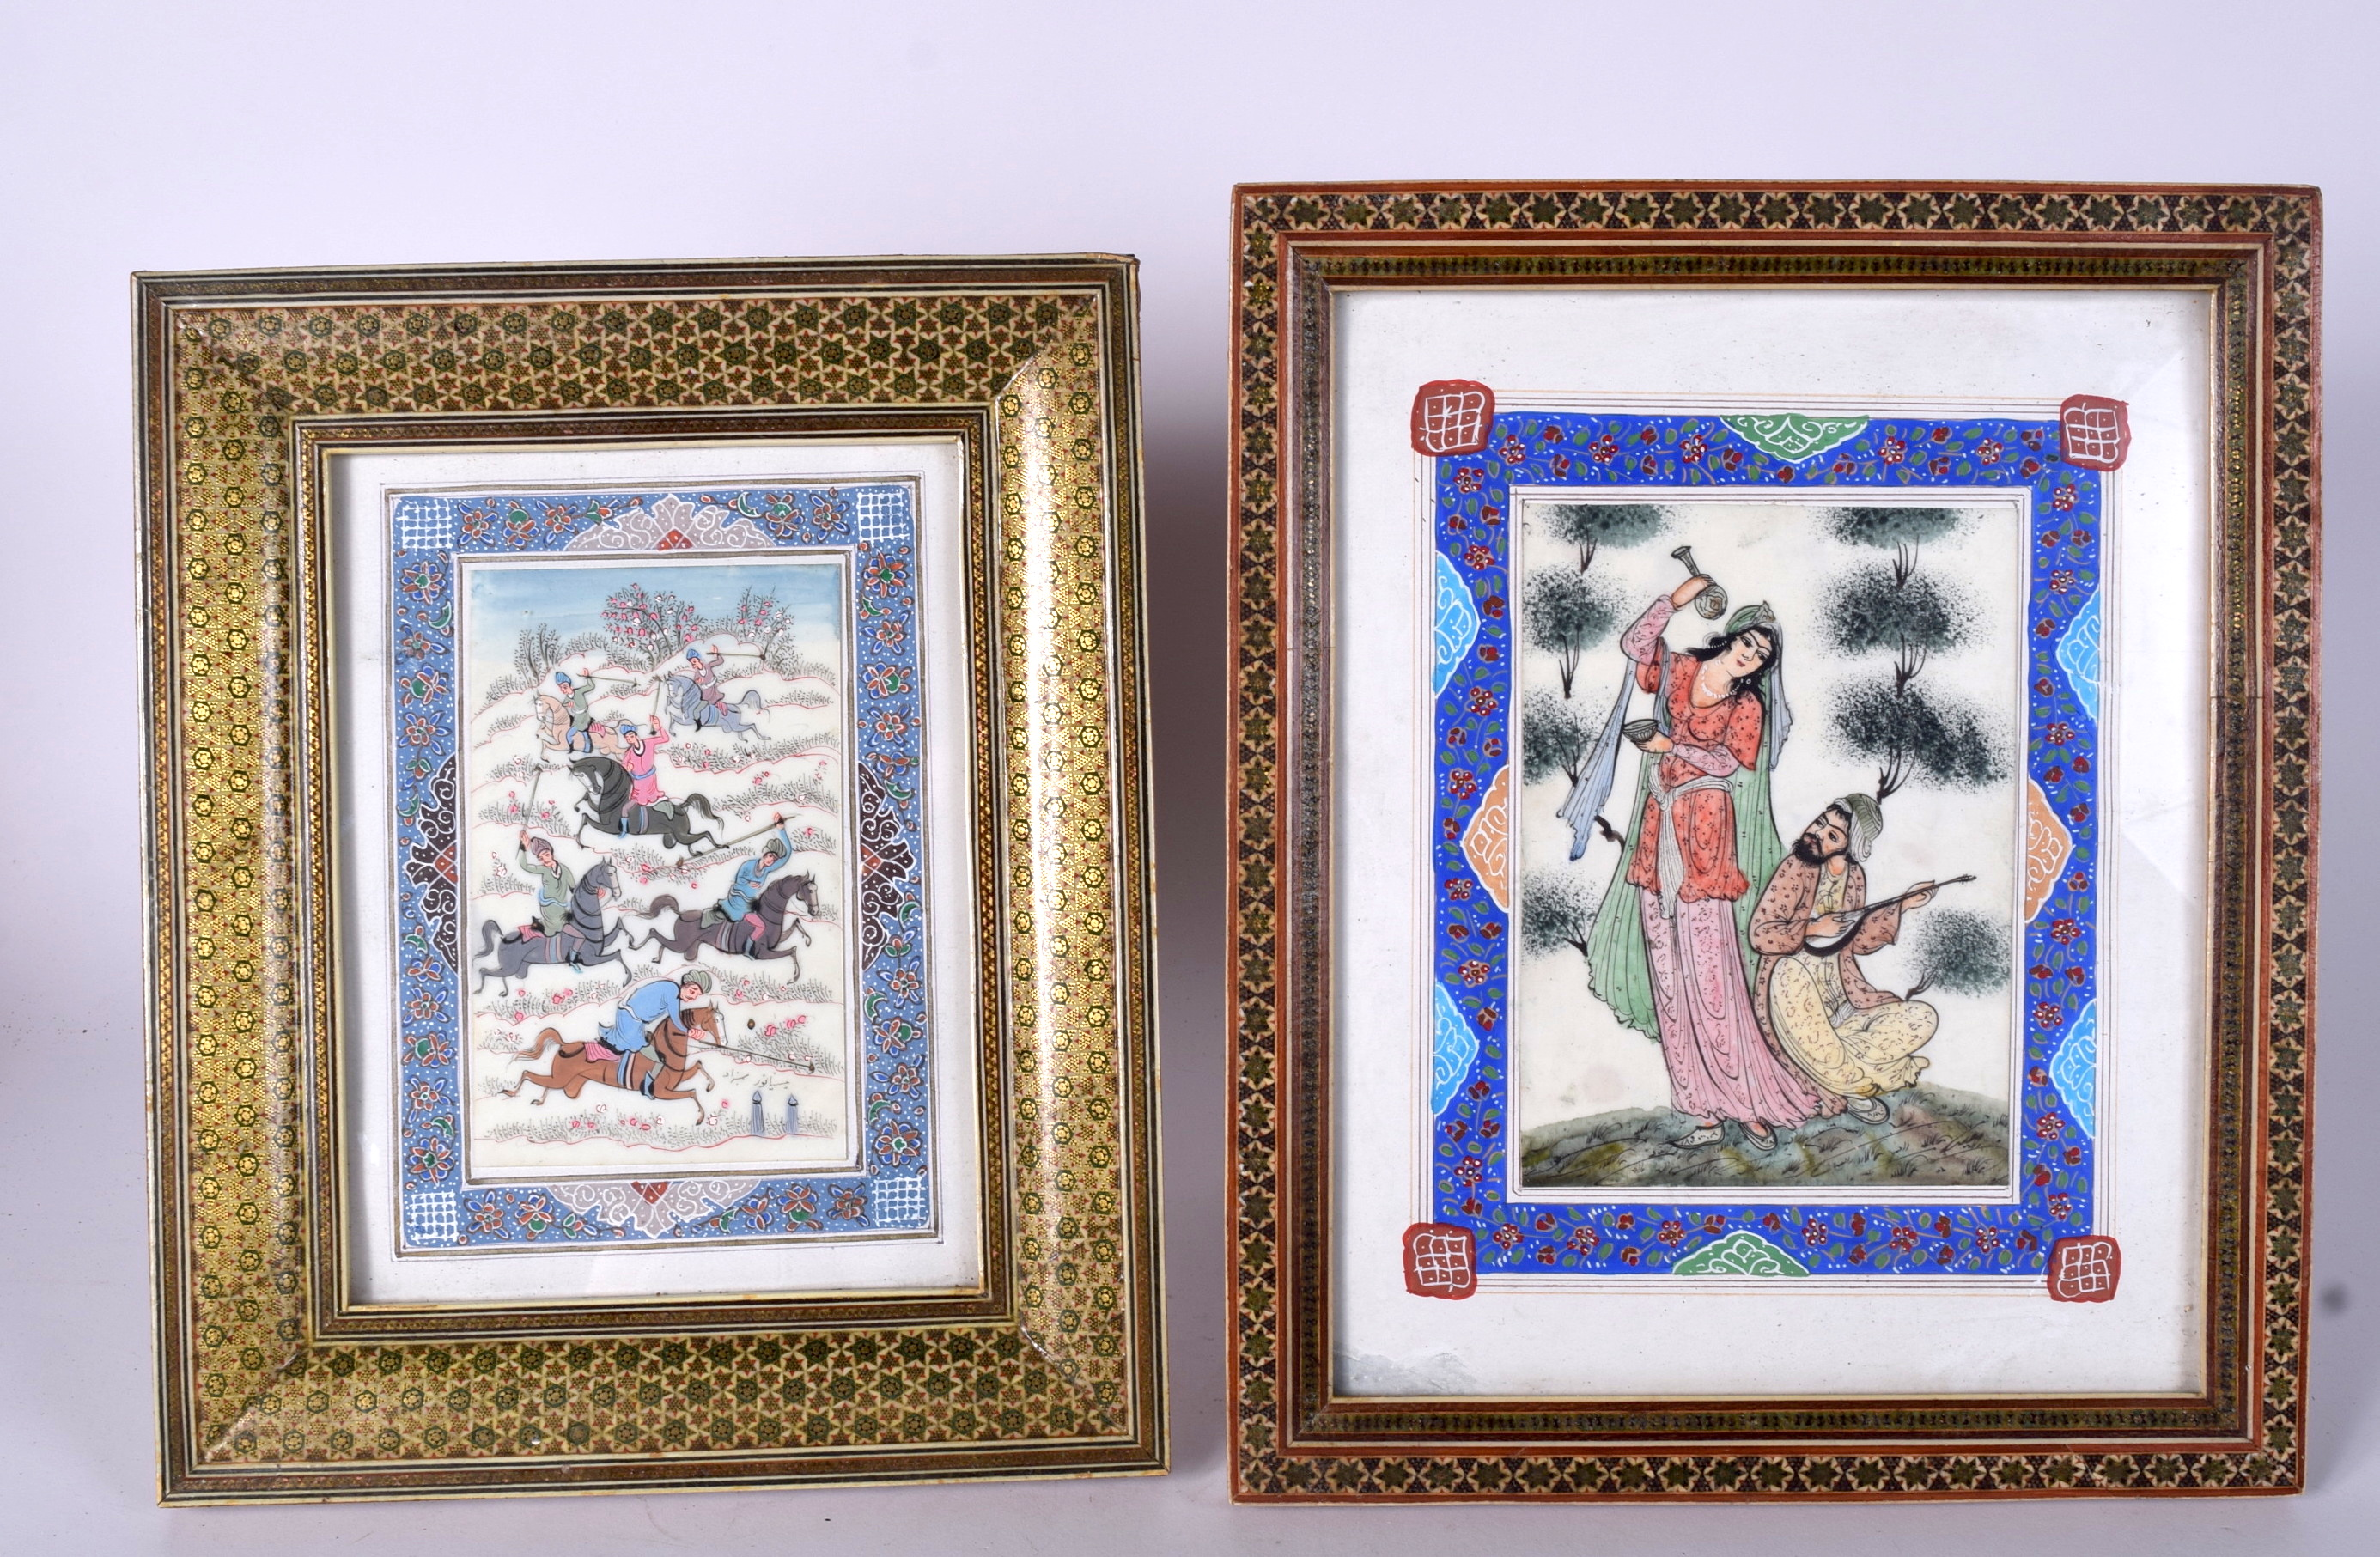 Lot 2337 - A NEAR PAIR OF EARLY 20TH CENTURY PERSIAN PAINTING ON IVORY, two lovers in a landscape, together w